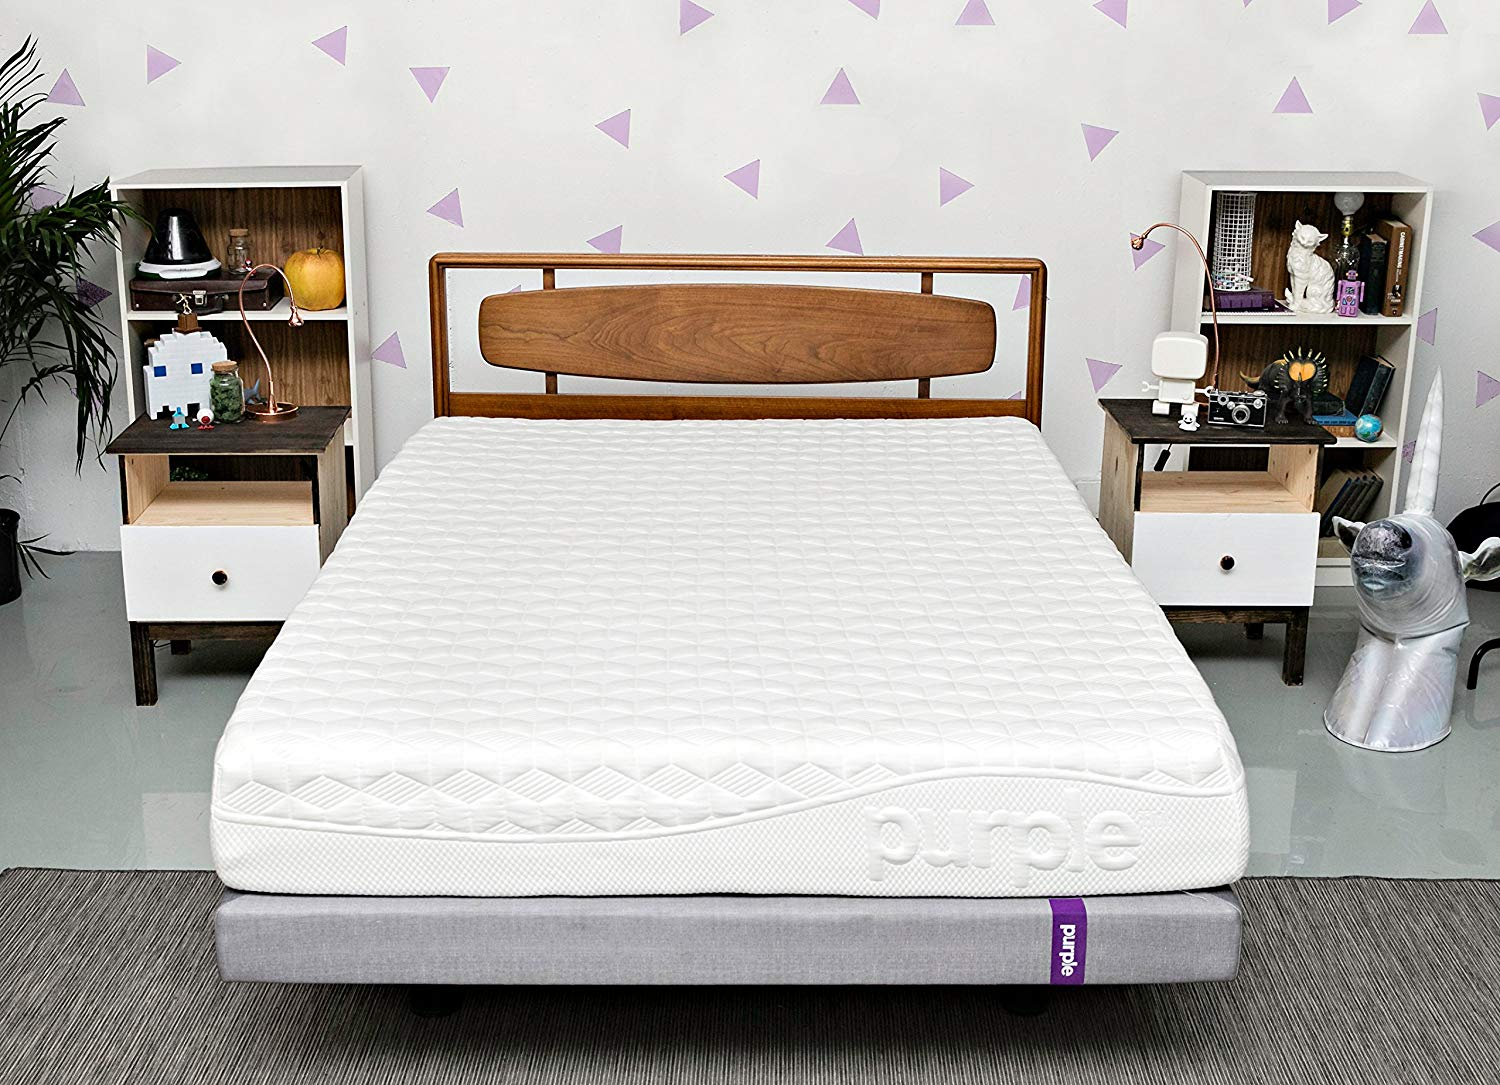 Purple Queen Best Mattress for Sex Review by www.snoremagazine.com